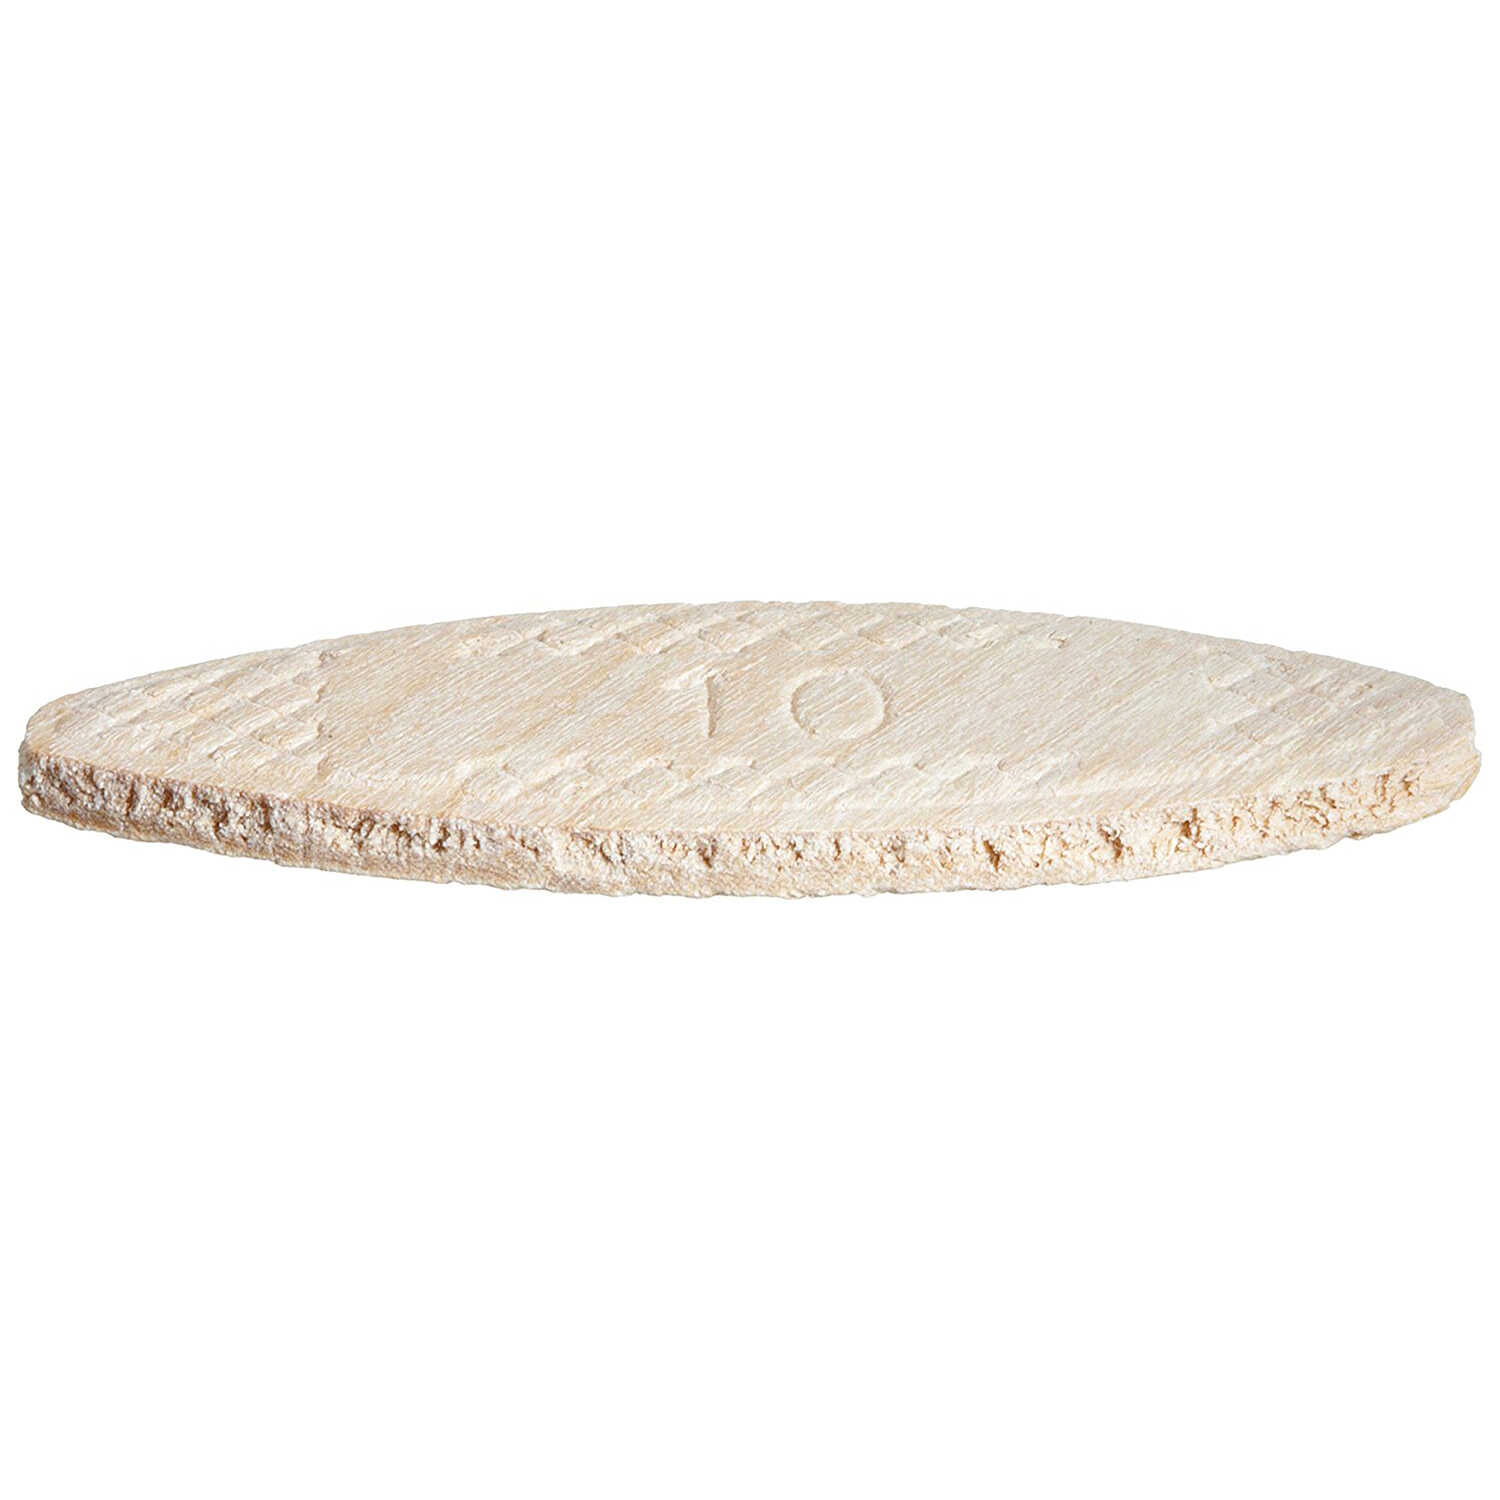 Wolfcraft  Hardwood  No.10  Biscuits  Ivory  50 pc.